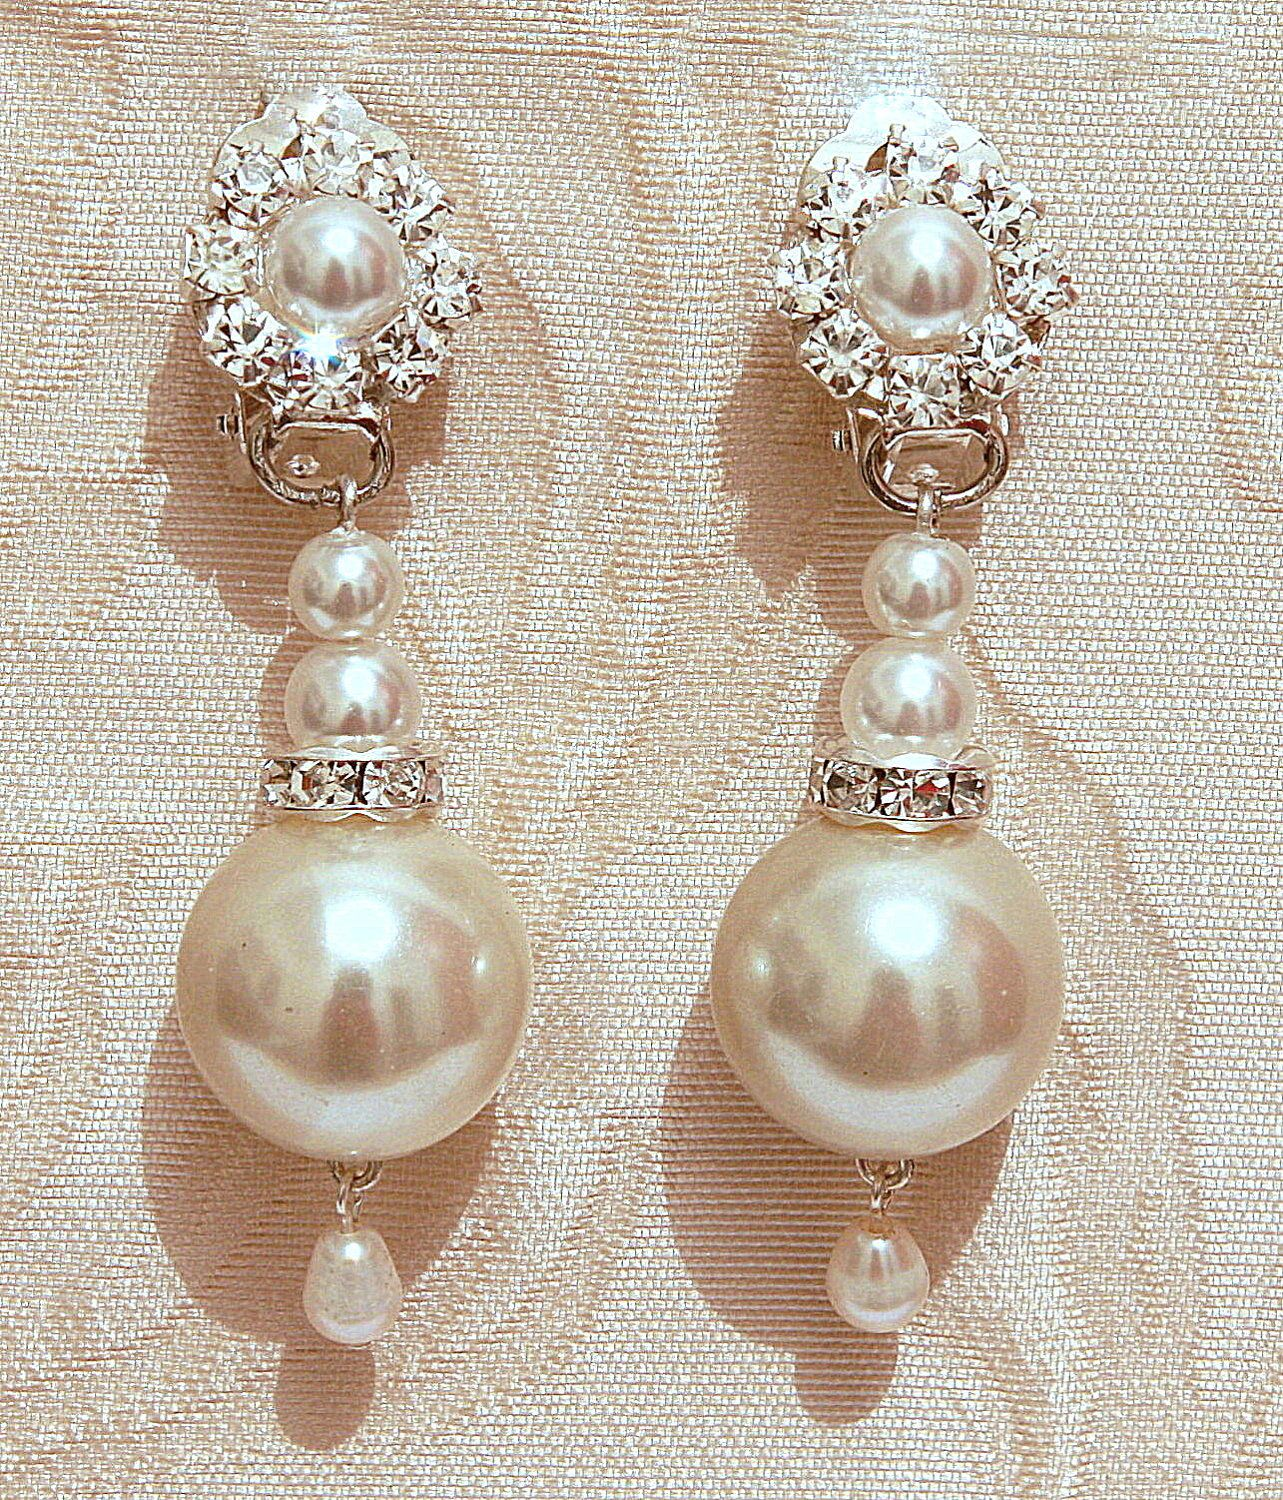 Pearls bridal earrings silver wedding chandelier earrings vintage pearls bridal earrings silver wedding chandelier earrings vintage wedding swarovski posts earrings ivory rhinestone crystals stud arubaitofo Choice Image